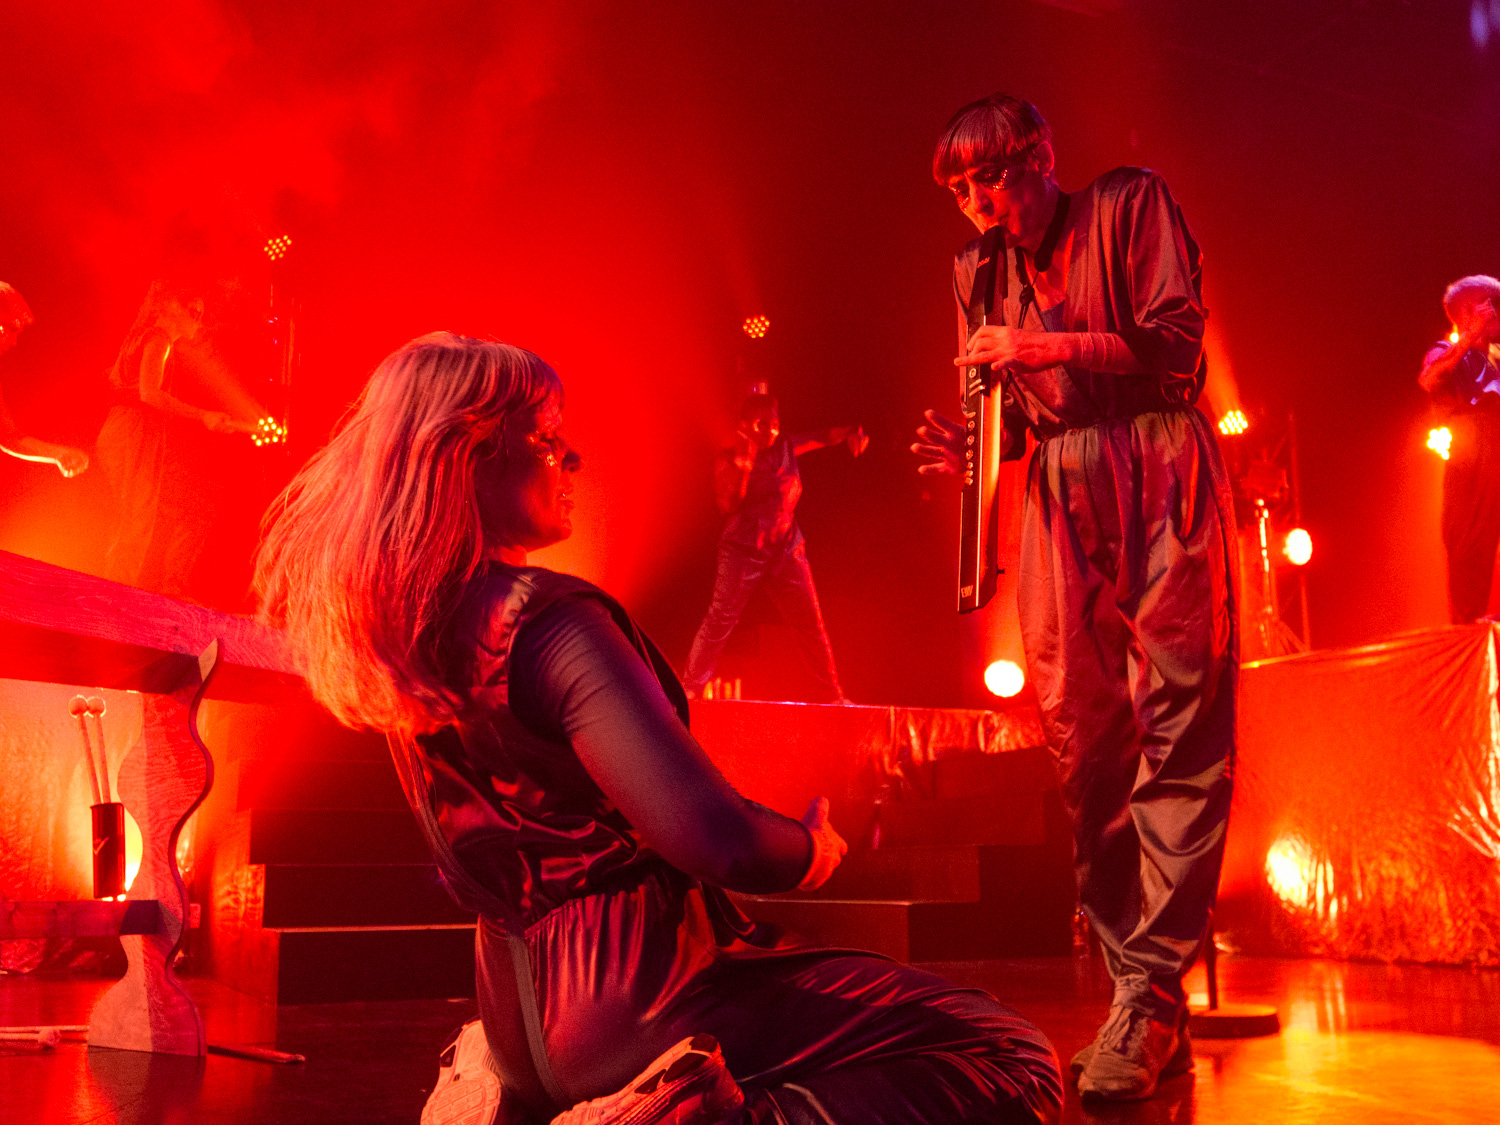 The Knife performs at Harpa's Silfurberg